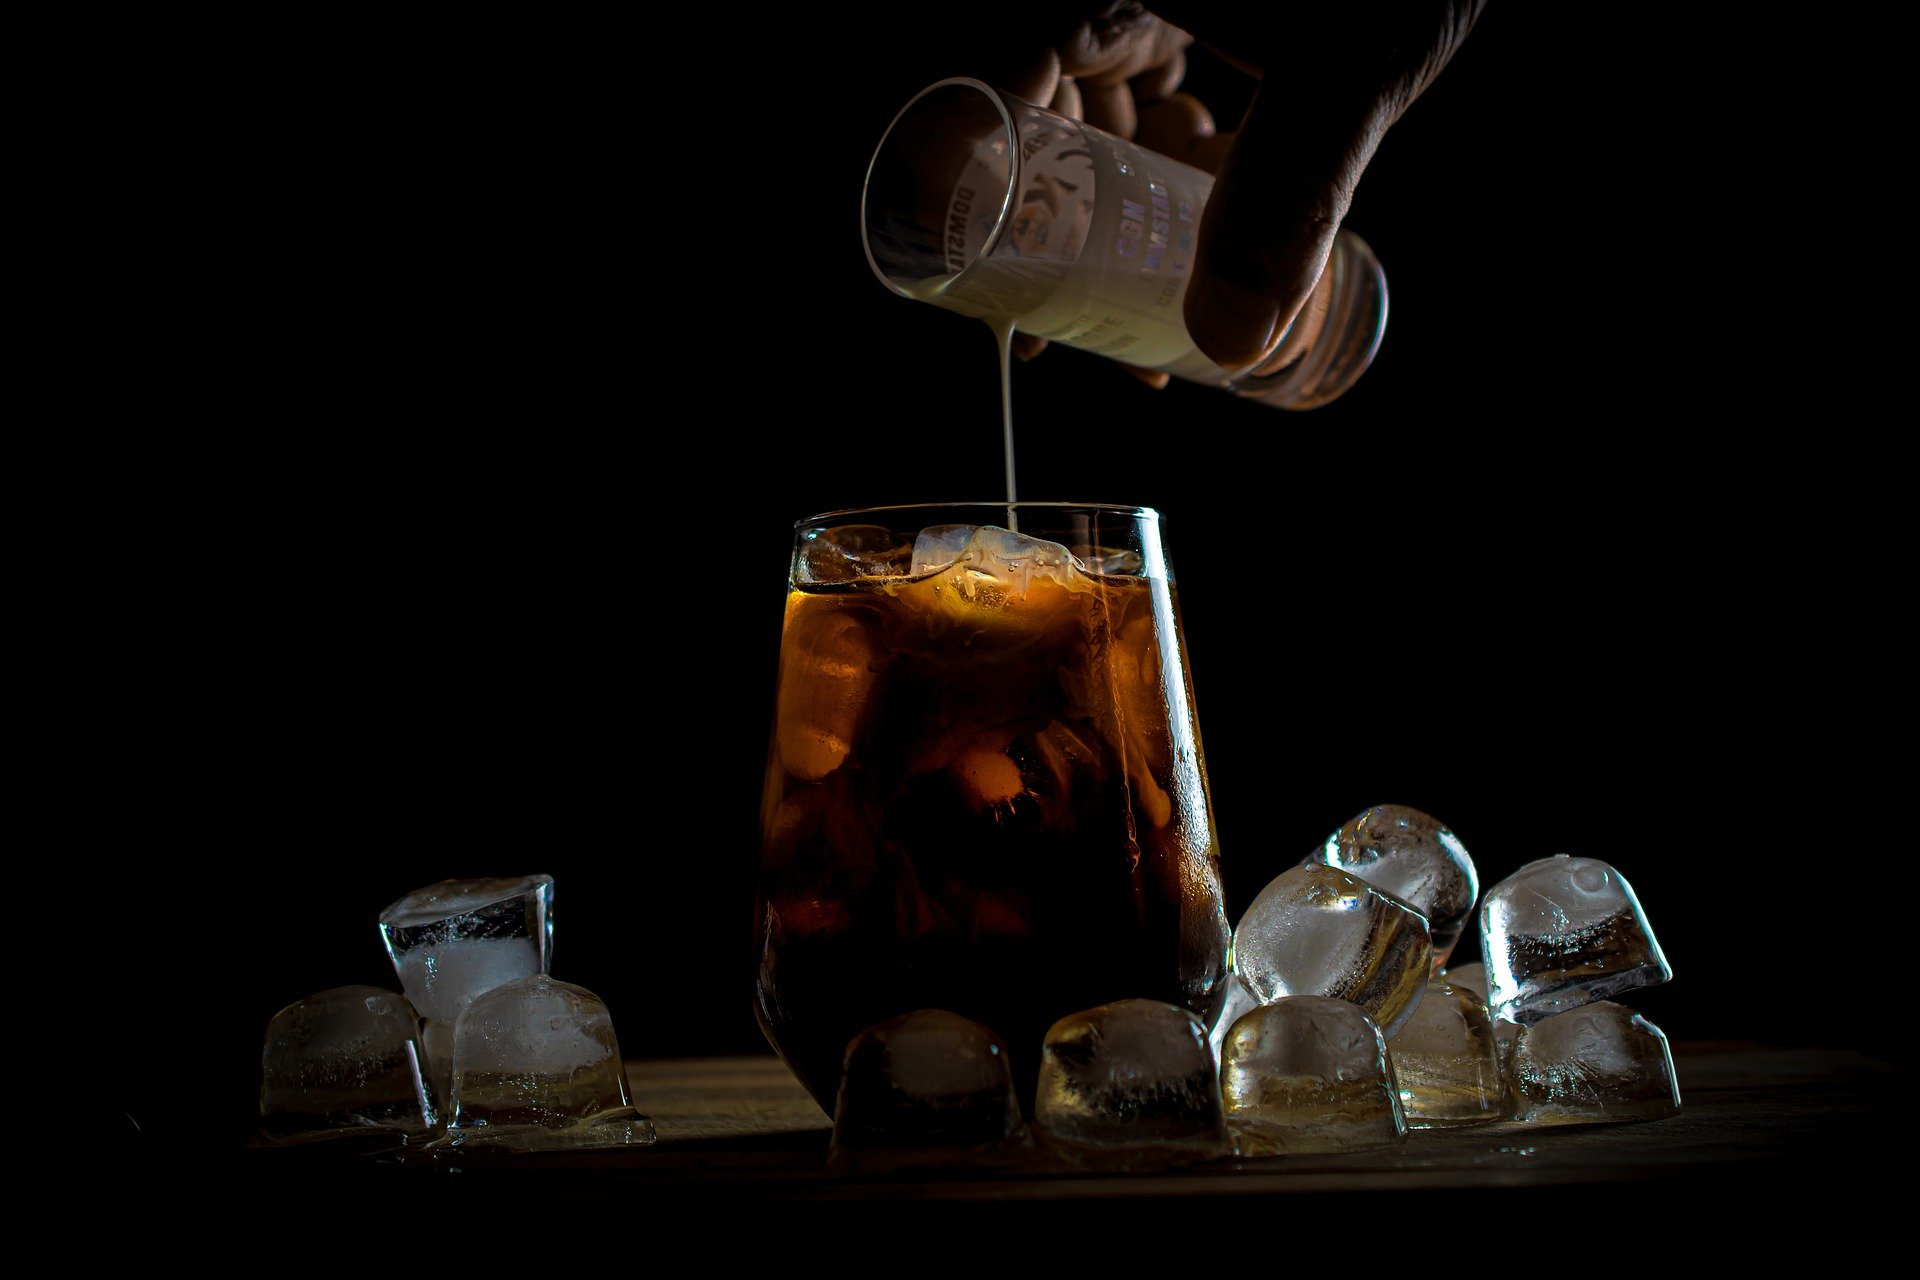 pouring syrup into a cup of iced coffee